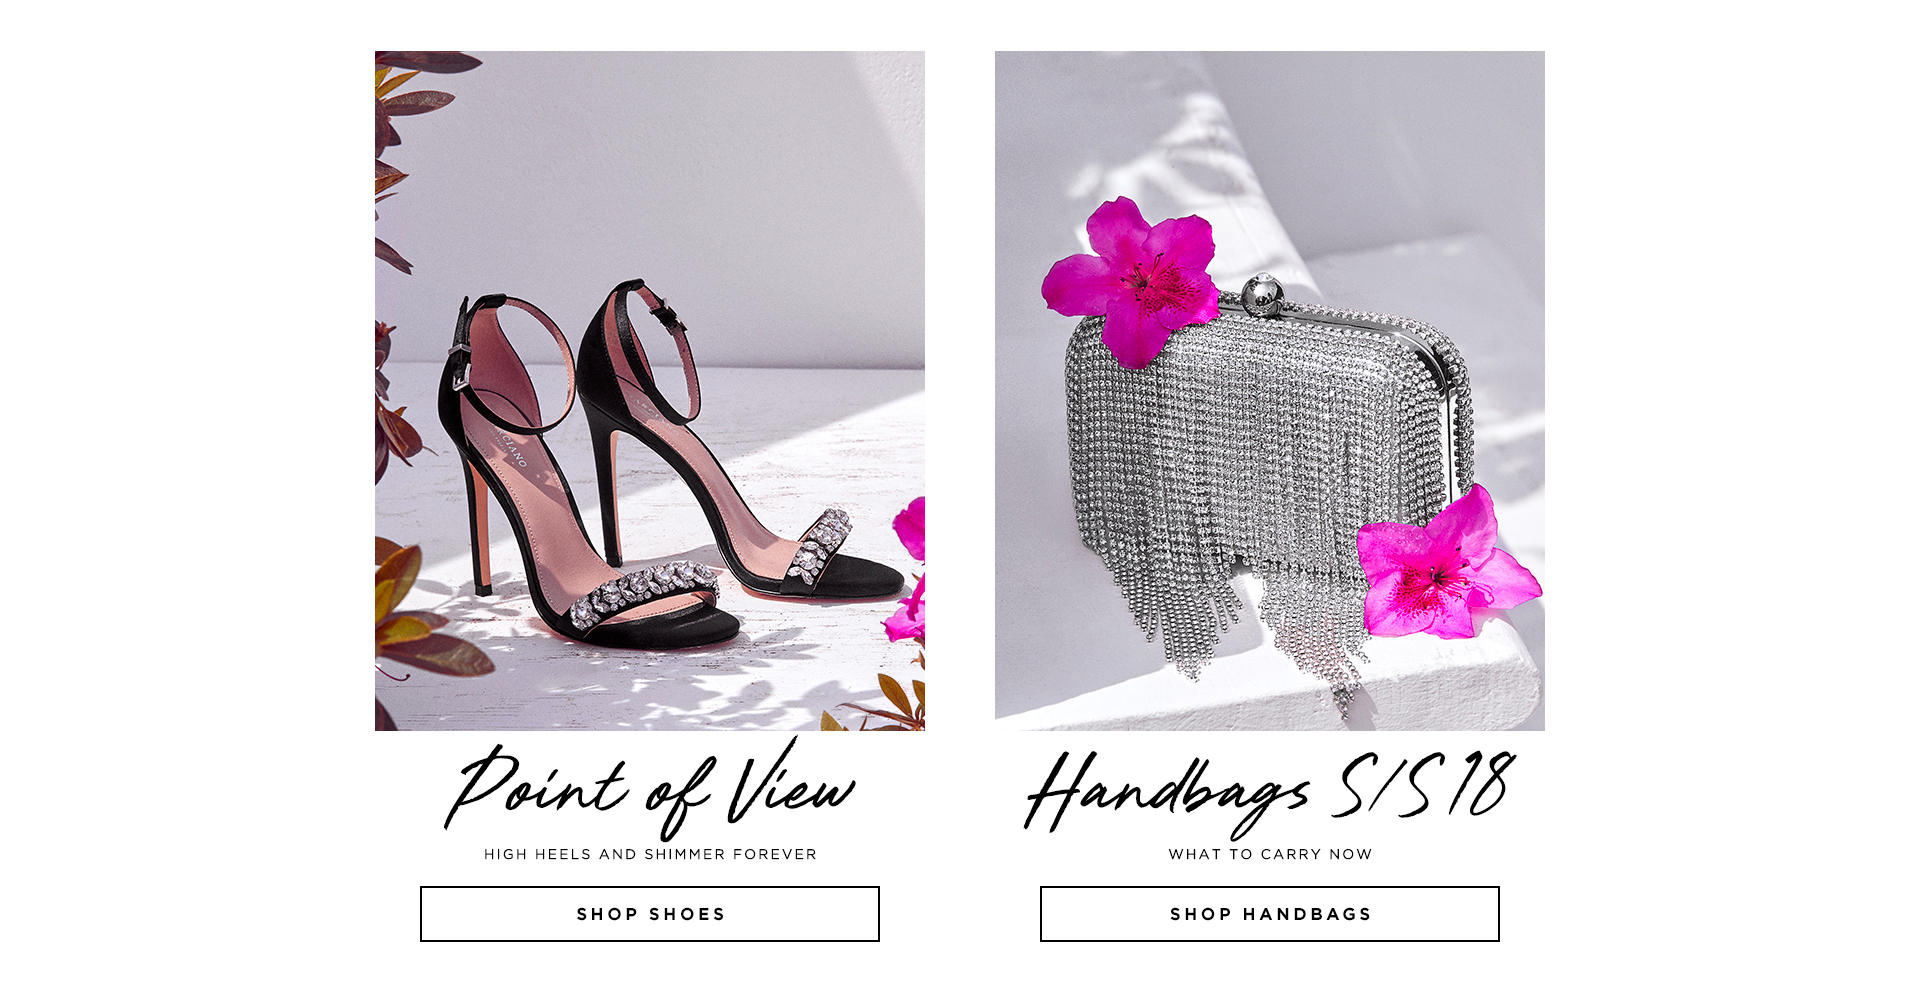 Handbags and Shoes